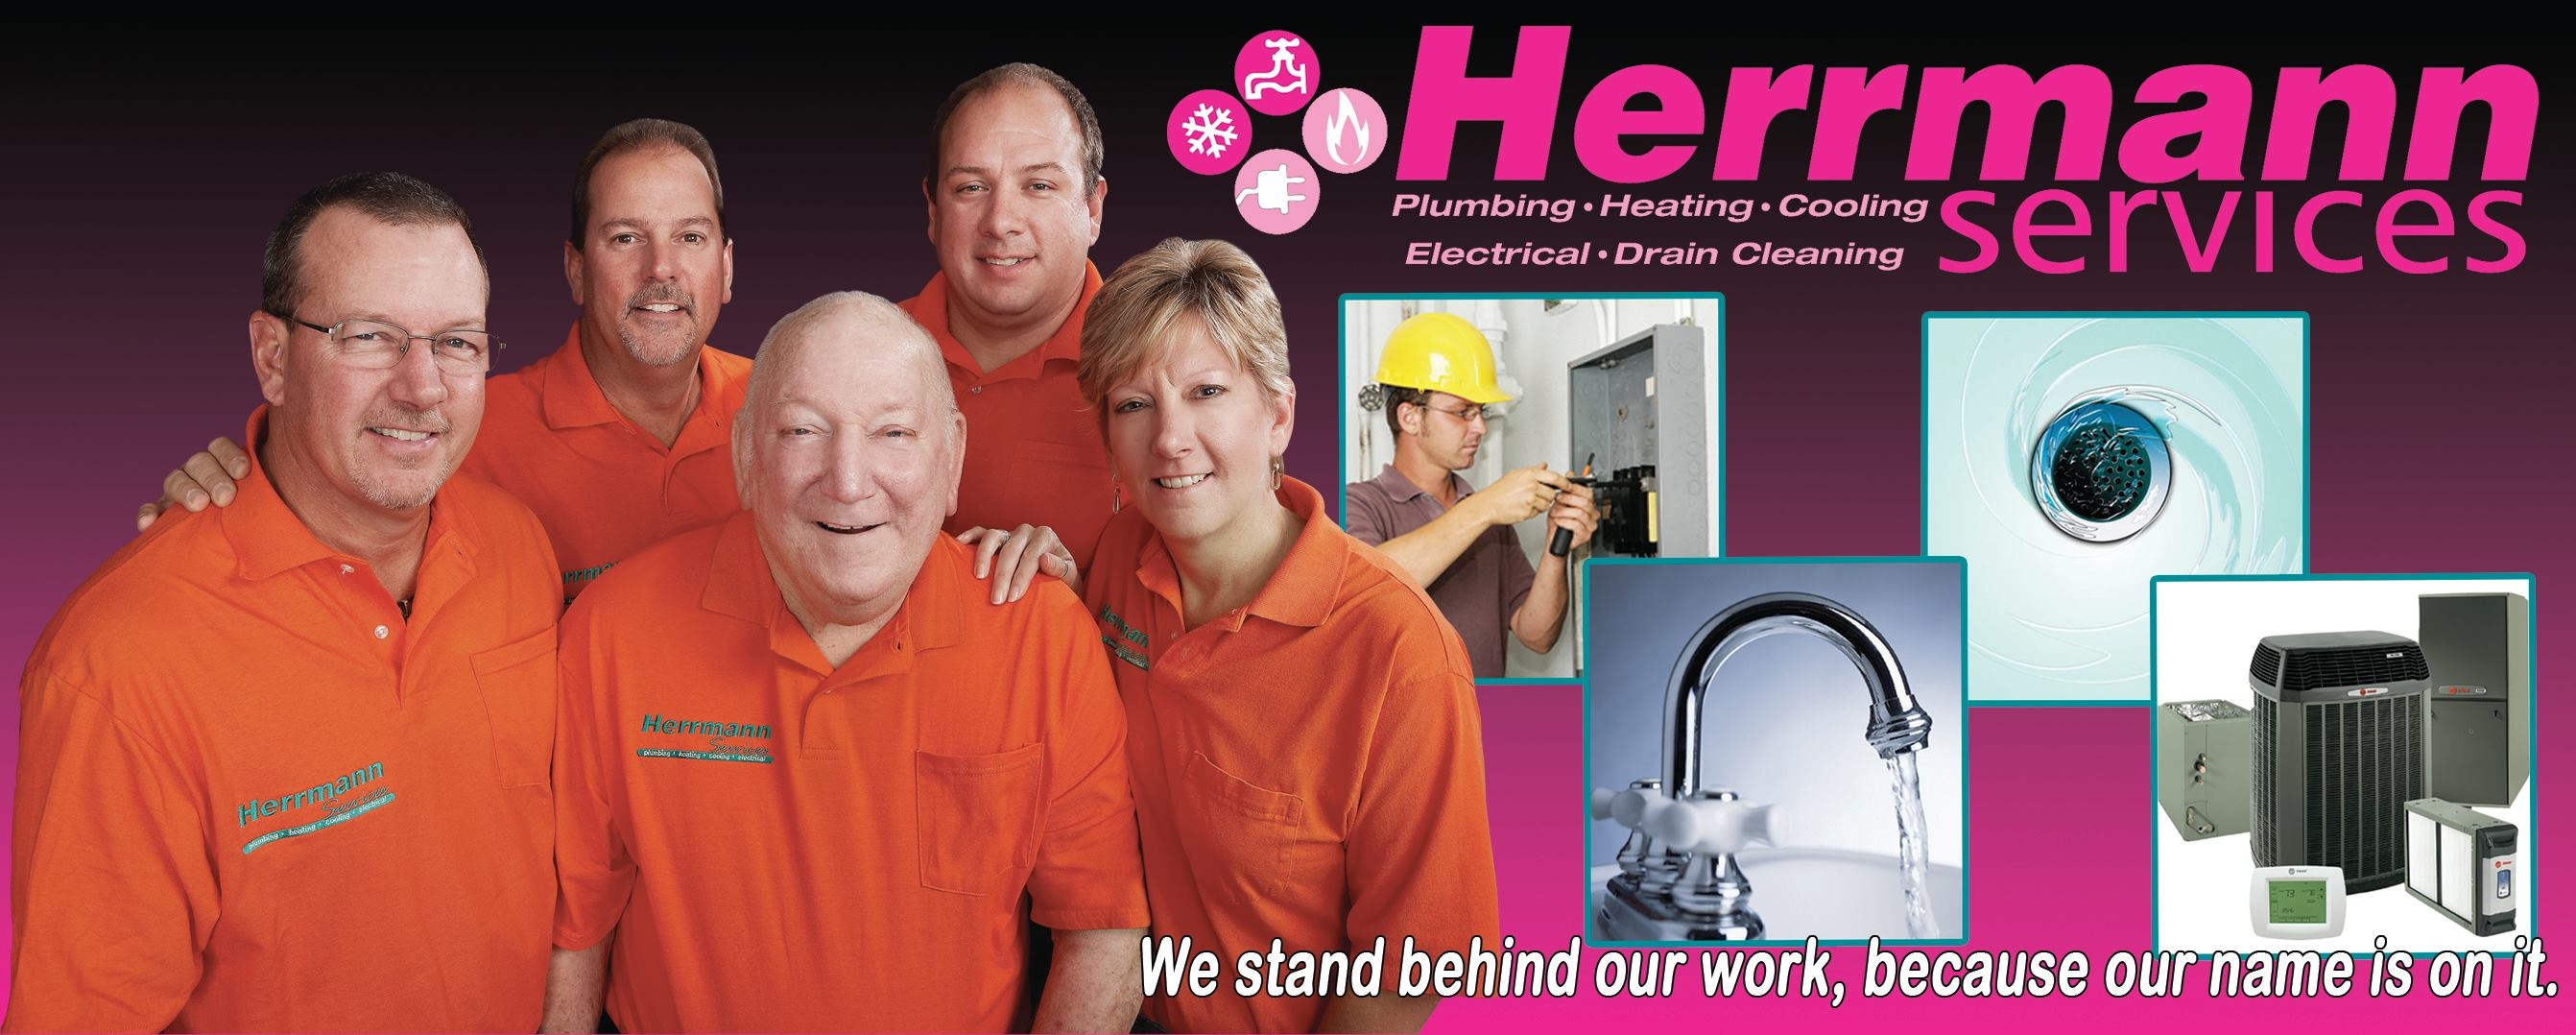 Herrmann Services can repair and service the furnace or heat pump in your Cincinnati area home. Regardless of the season or the temperature outside, we can make your home feel perfectly comfortable inside. Whether you need furnace, air conditioner or